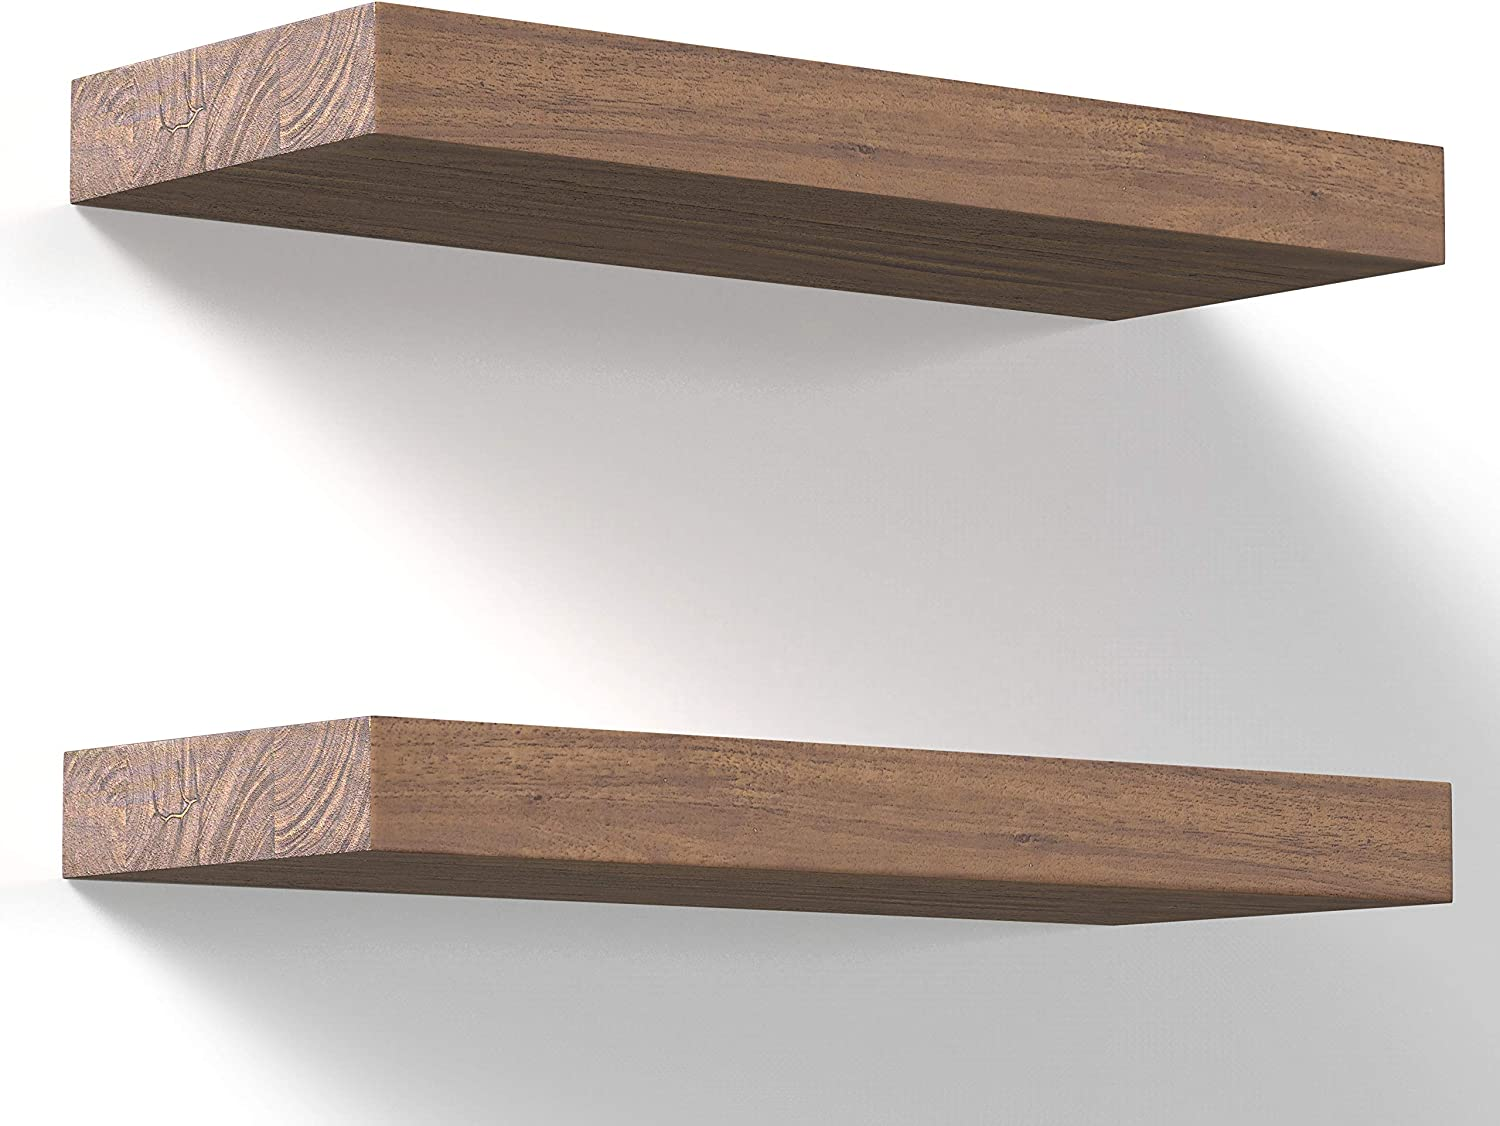 Floating Shelves Wall Mounted 17-Inch - Thick Handmade Set of Dark Brown Wooden Shelf, Natural Rustic Farmhouse Acacia Hard Wood, Solid Shelving for Kitchen, Bathroom, Bedroom Decor - 2 Pack